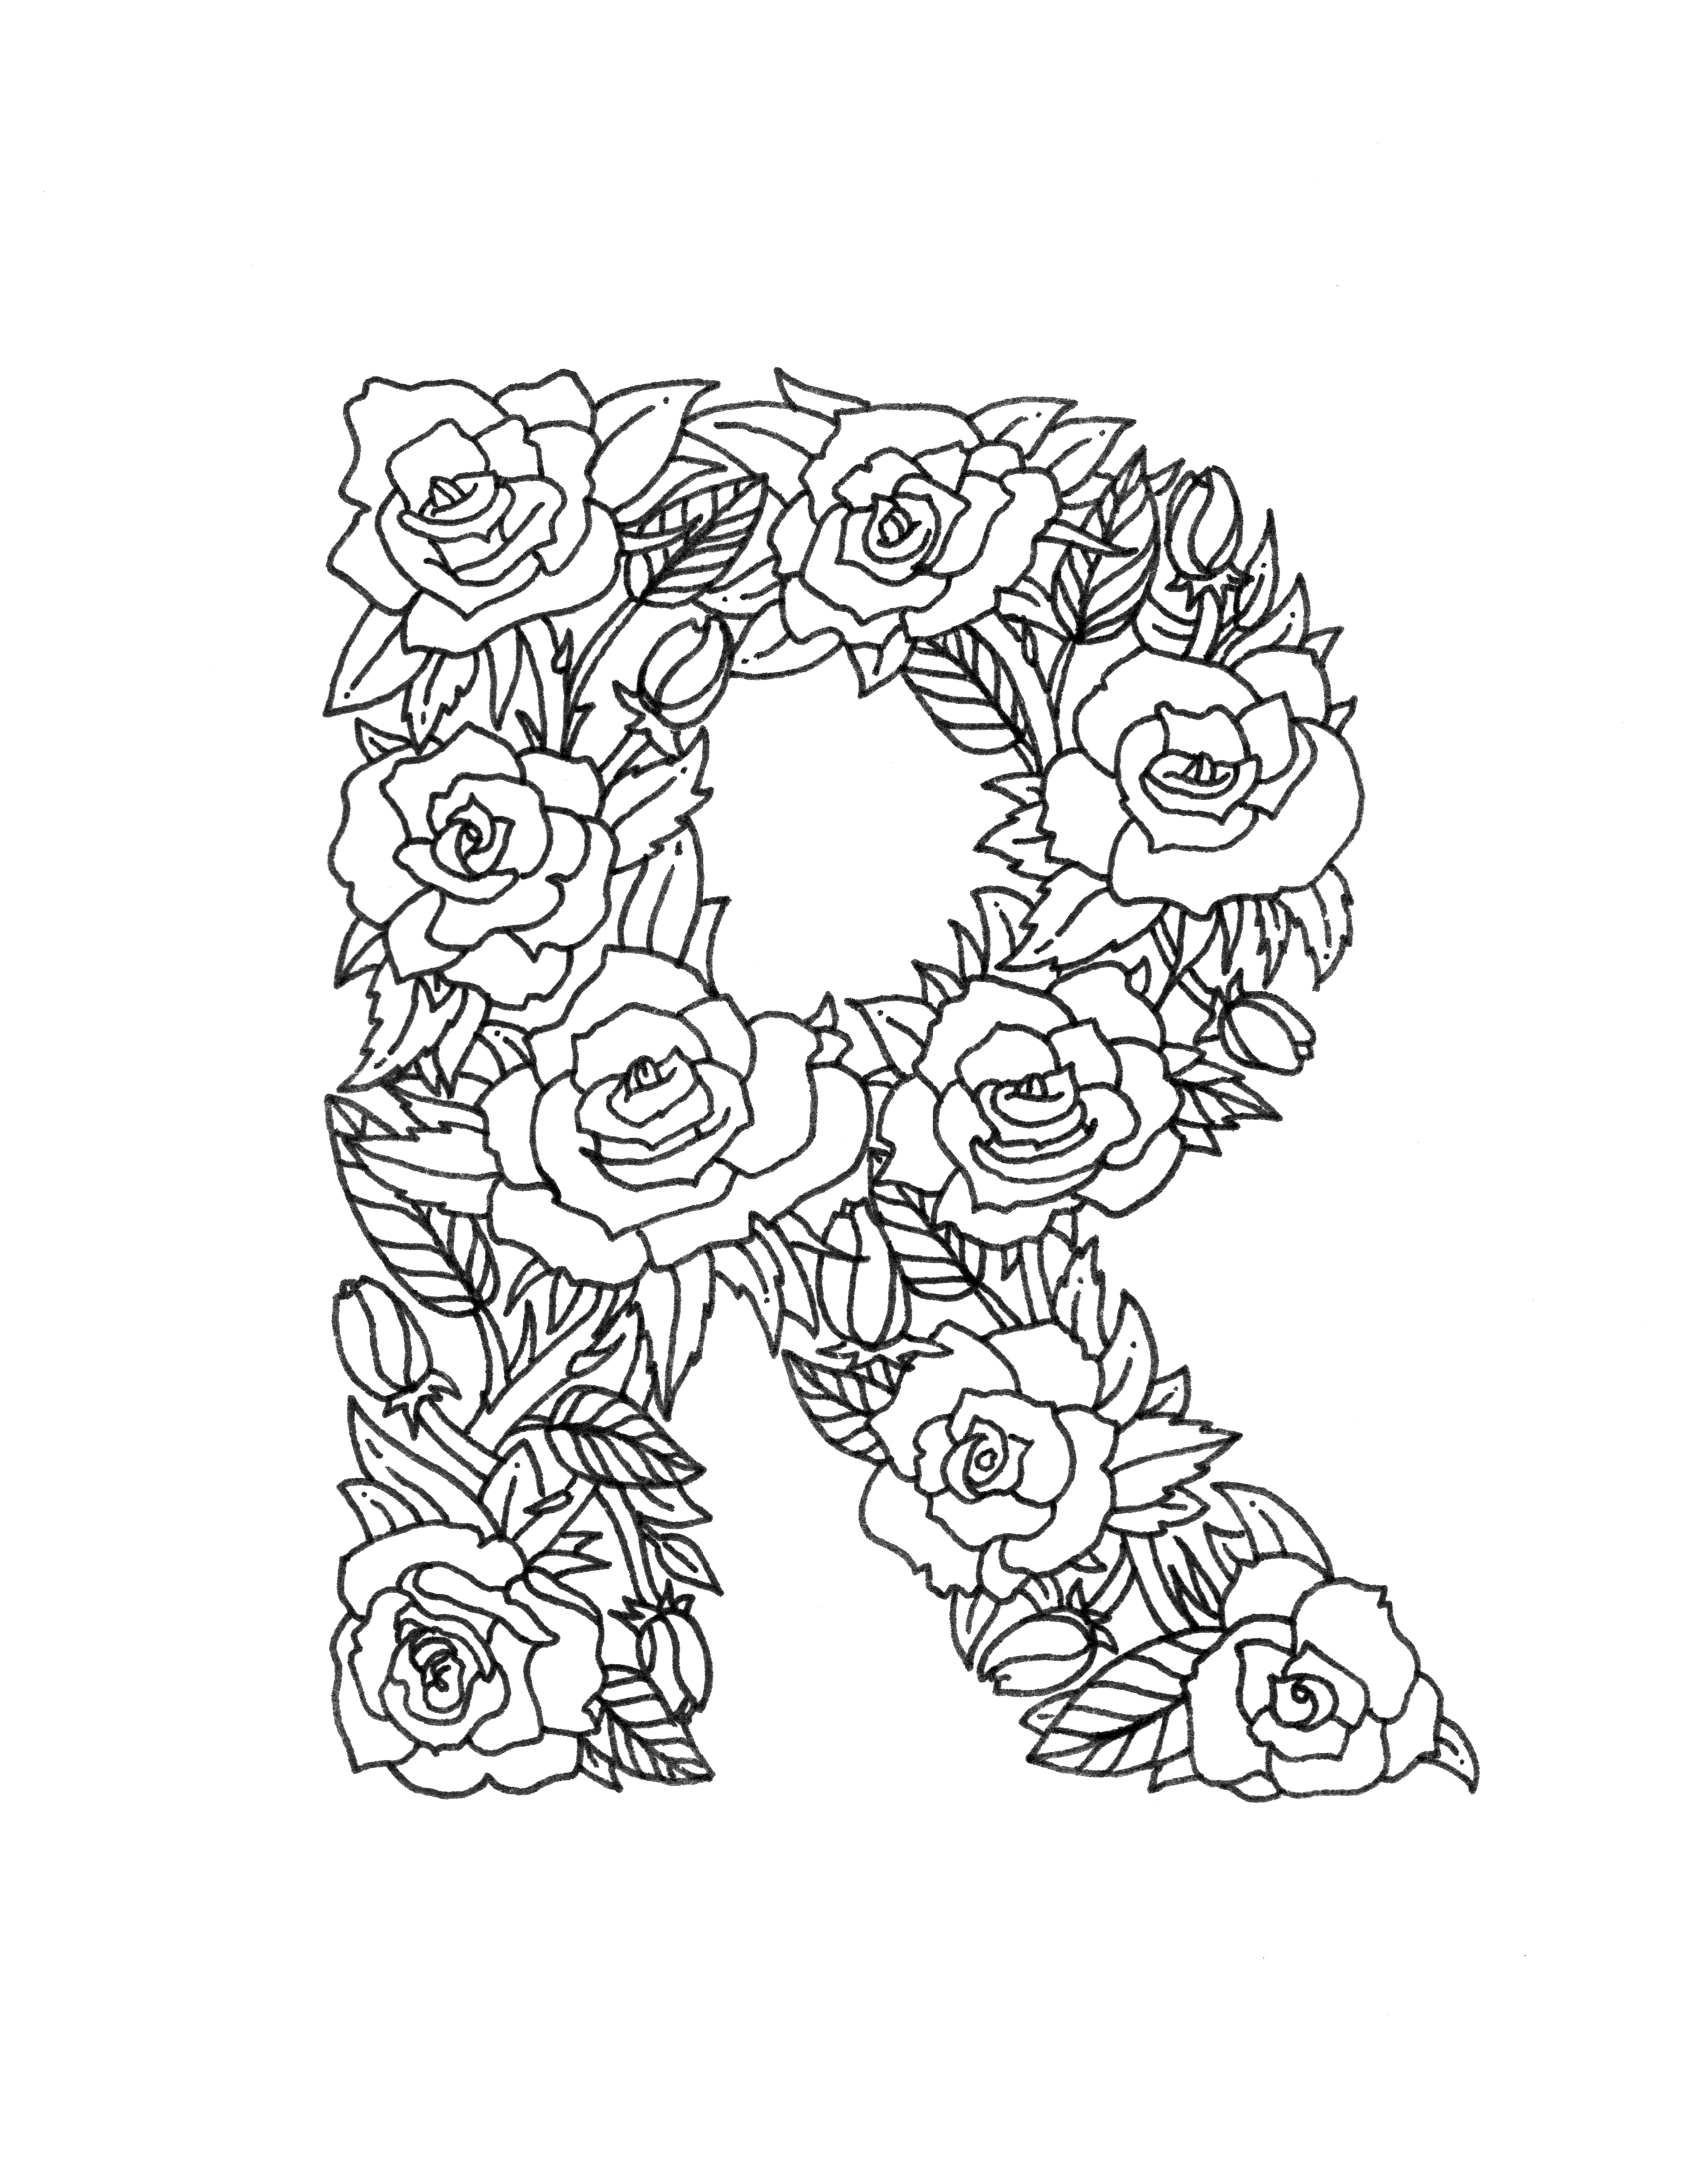 Letter Art Drawing at GetDrawings.com | Free for personal use Letter ...